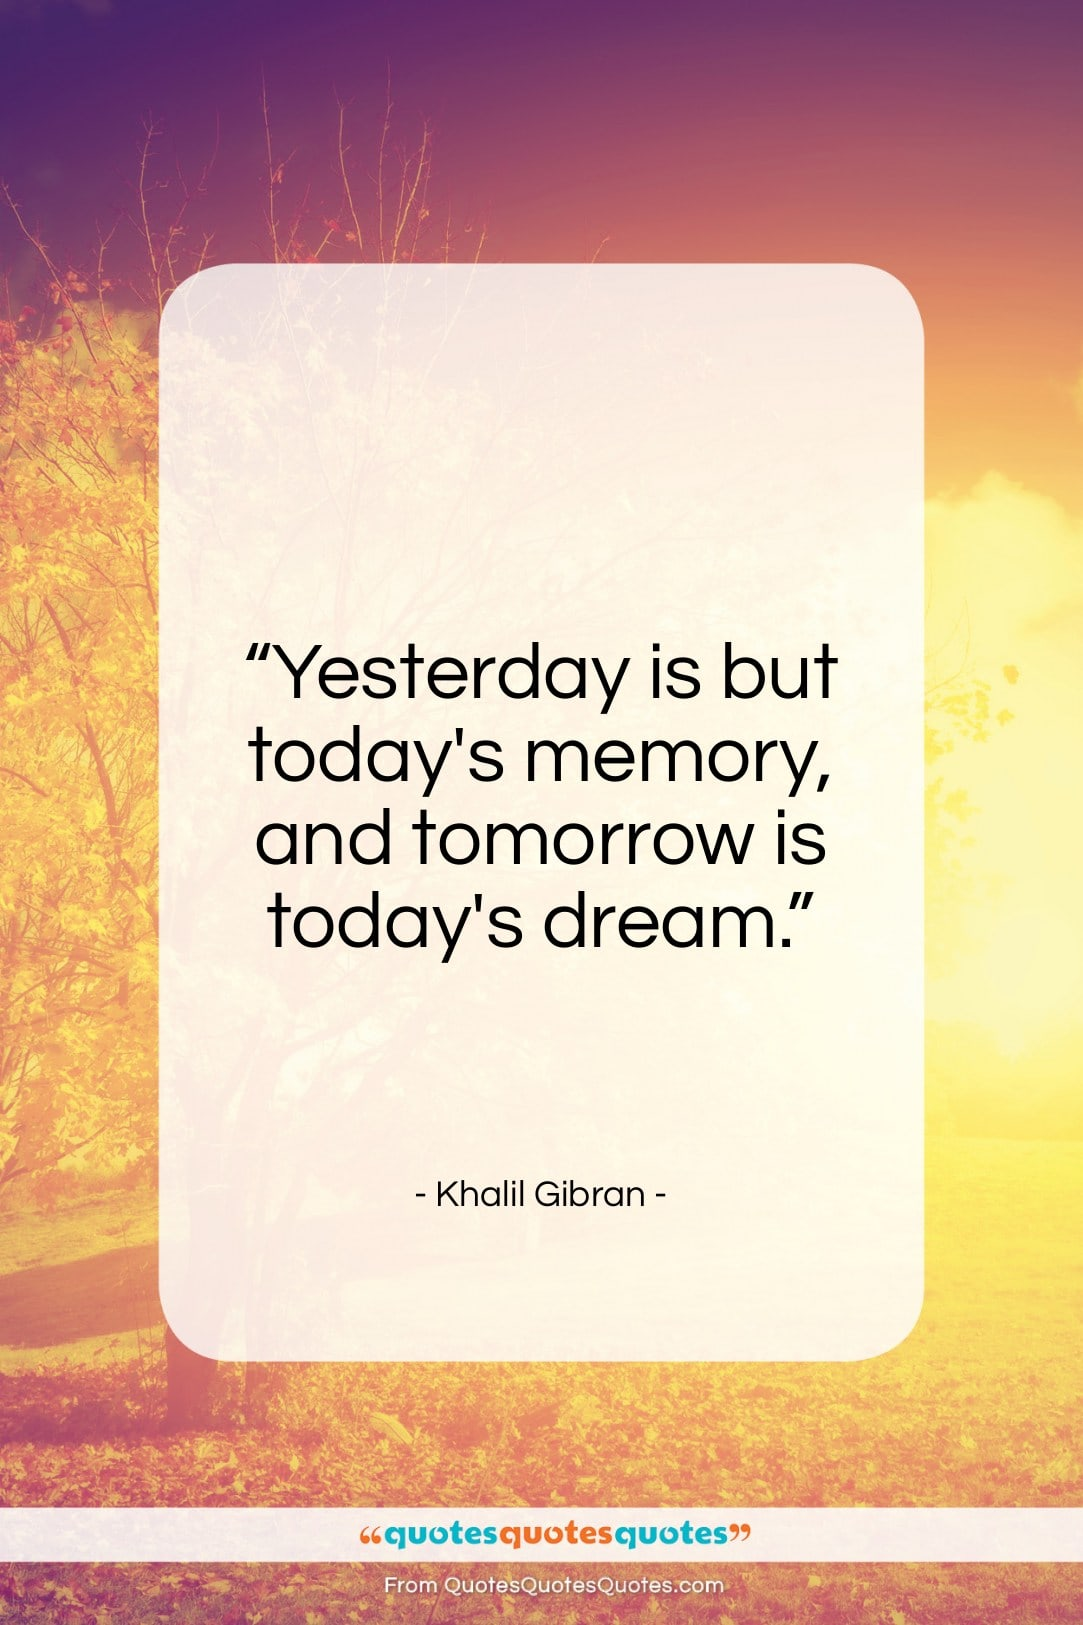 Get The Whole Khalil Gibran Quote Yesterday Is But Todays Memory